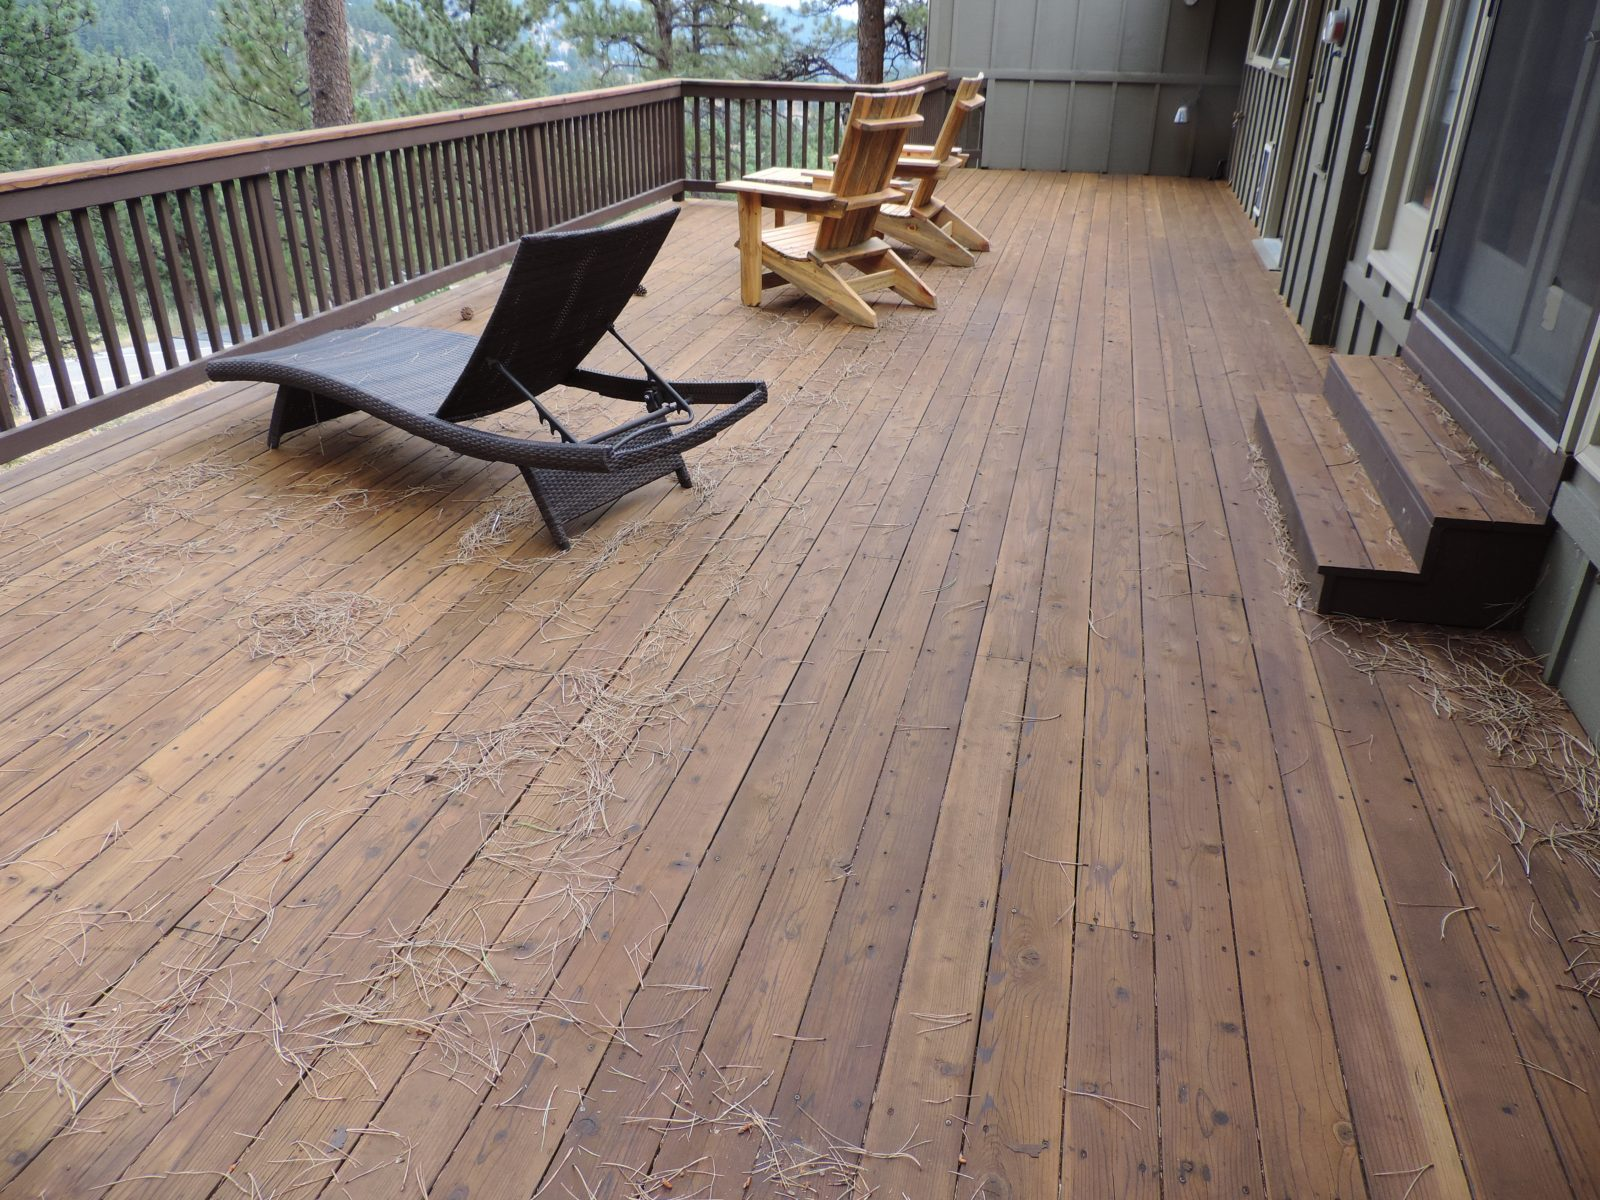 Menards Deck Sealer | Menards Deck Boards | Cedar Wood Lowes